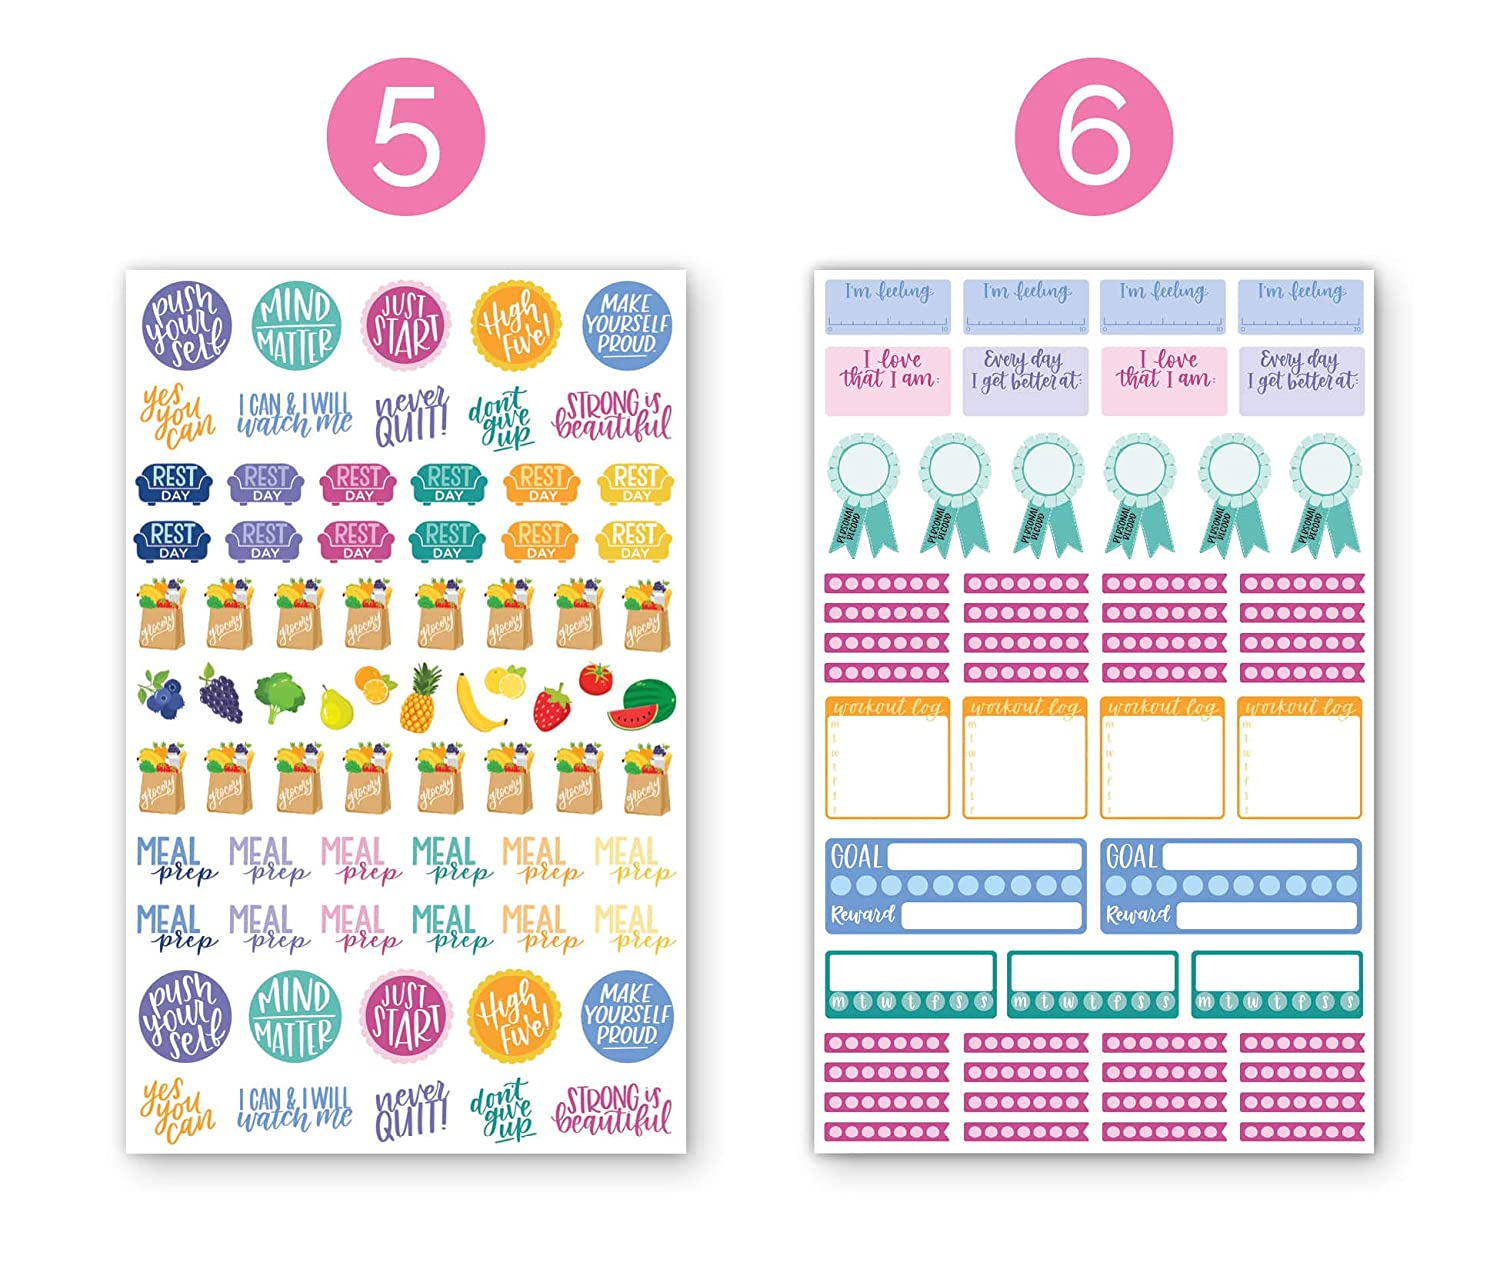 1//4 Dot Labels 1000+ Stickers Per Pack! bloom daily planners Color Coding Planner Stickers Six Sheets